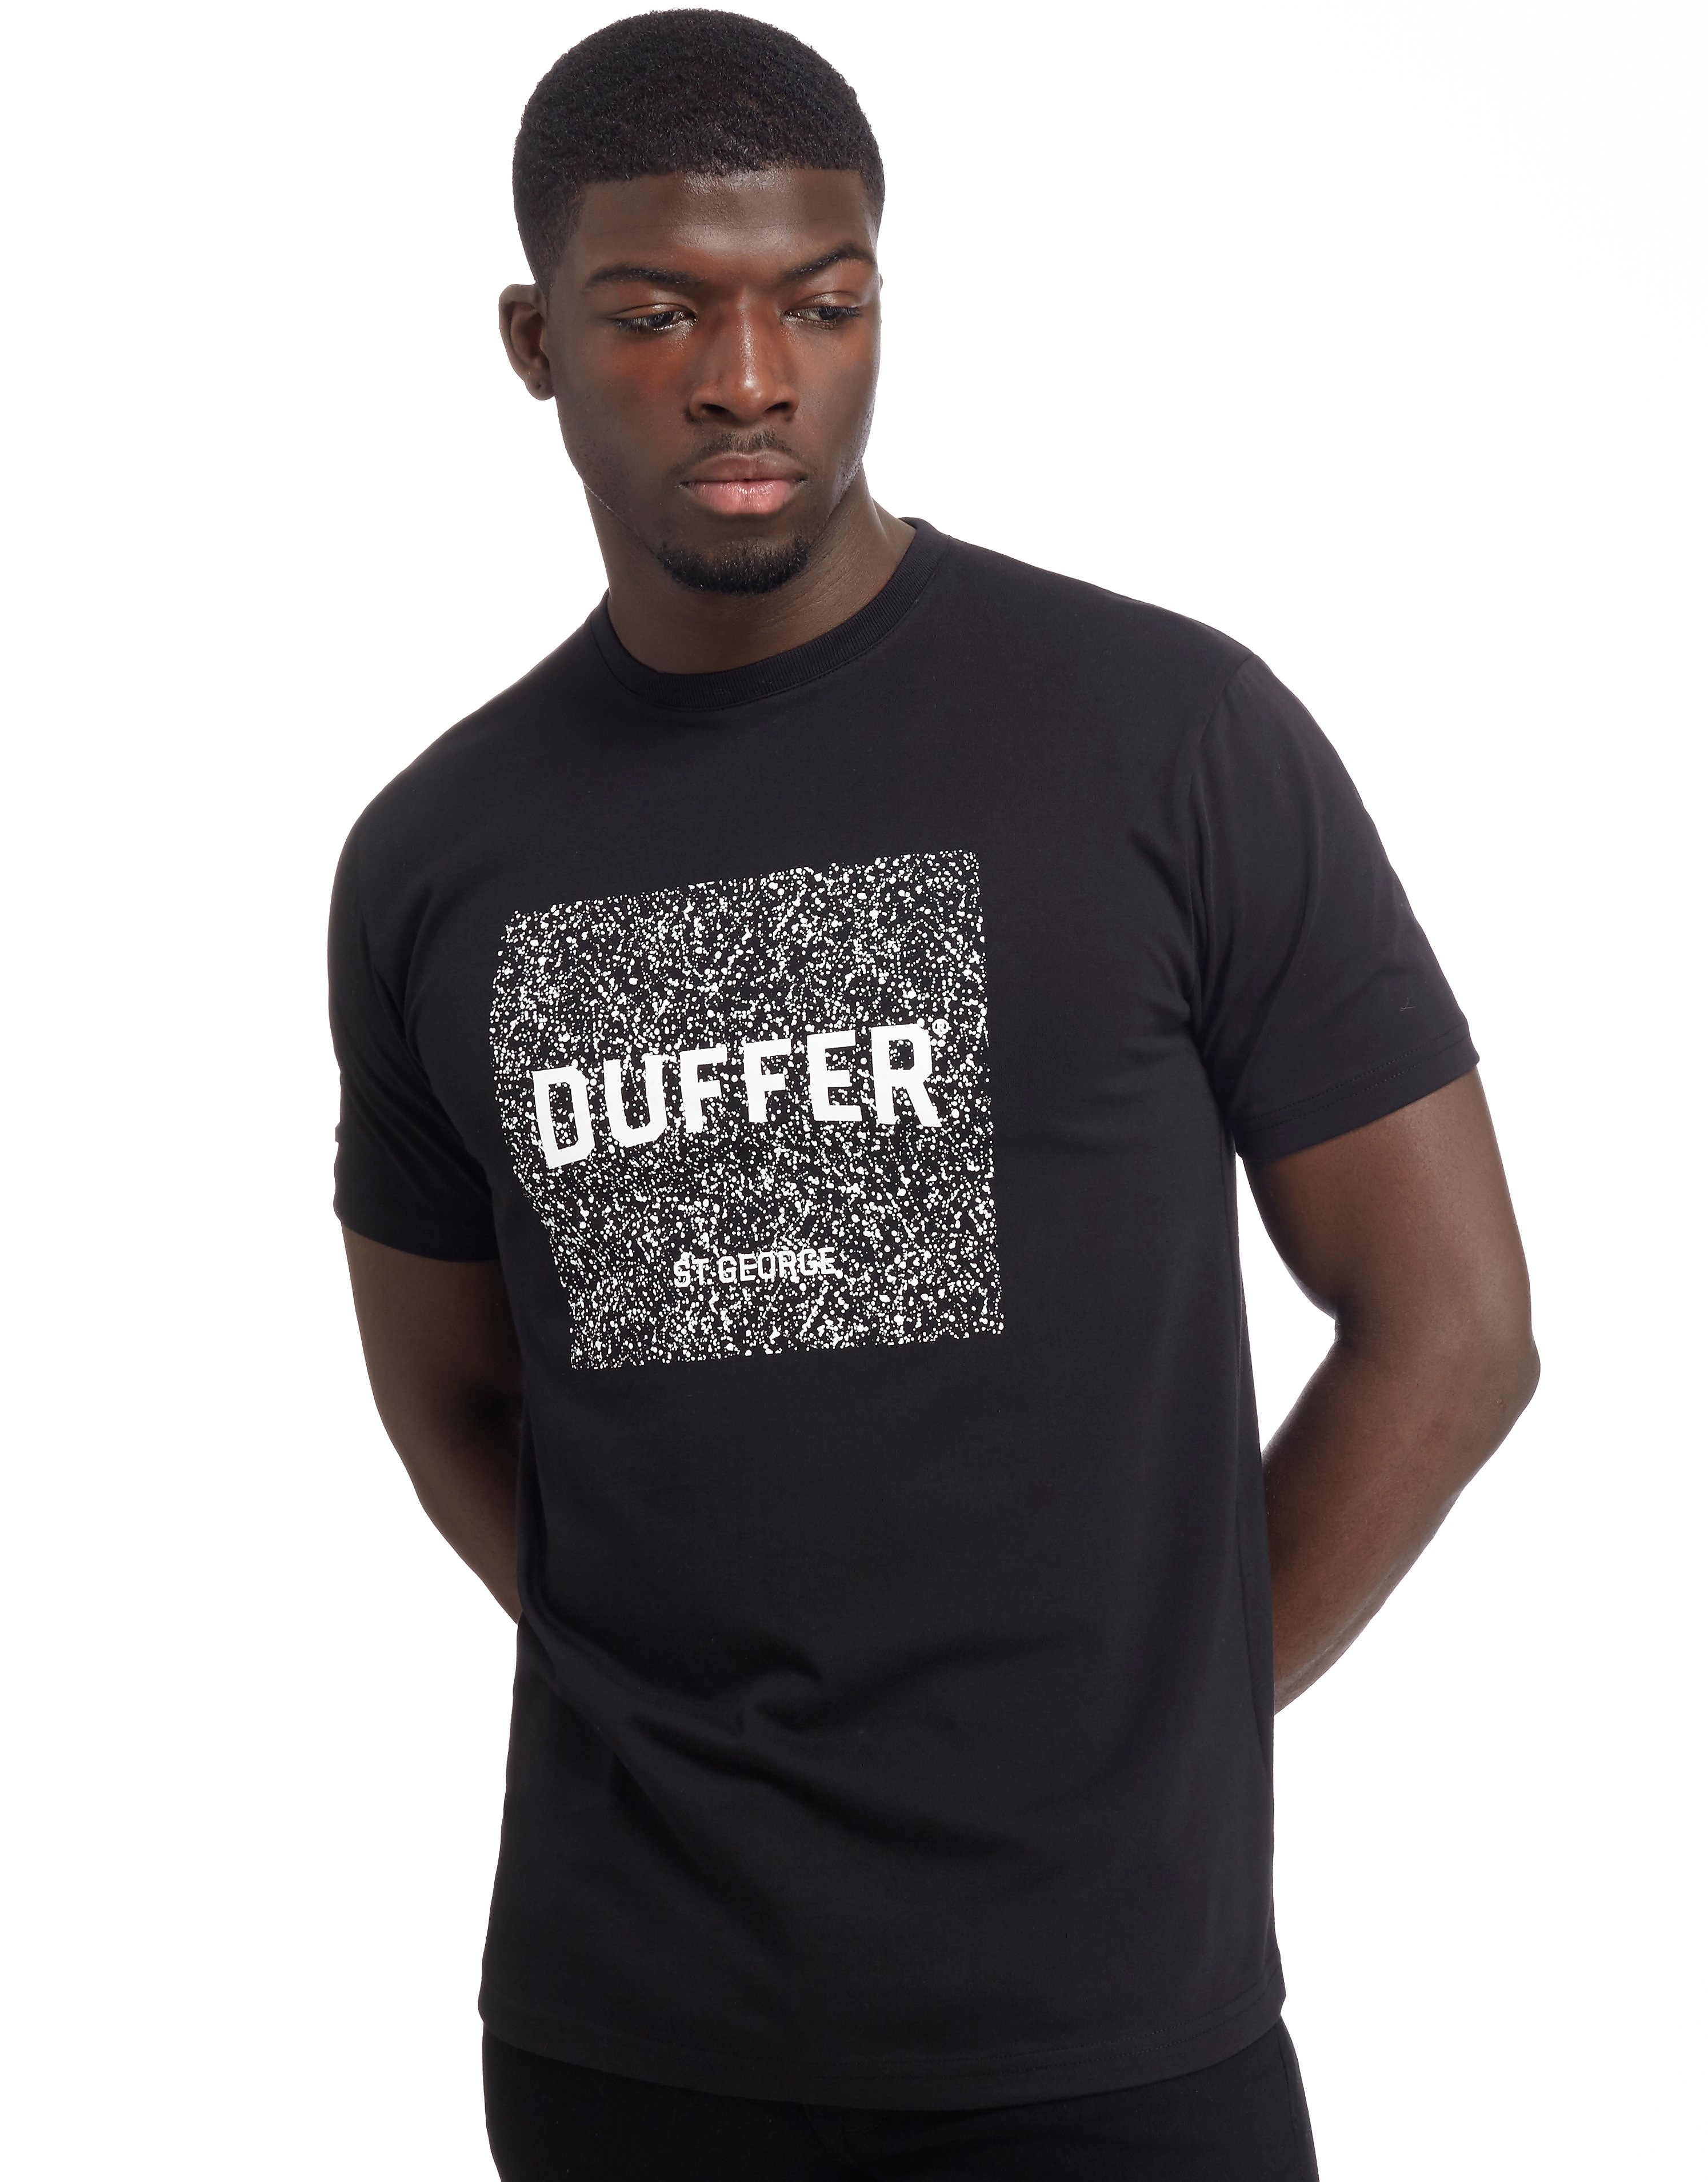 Duffer of St George Inks T-Shirt